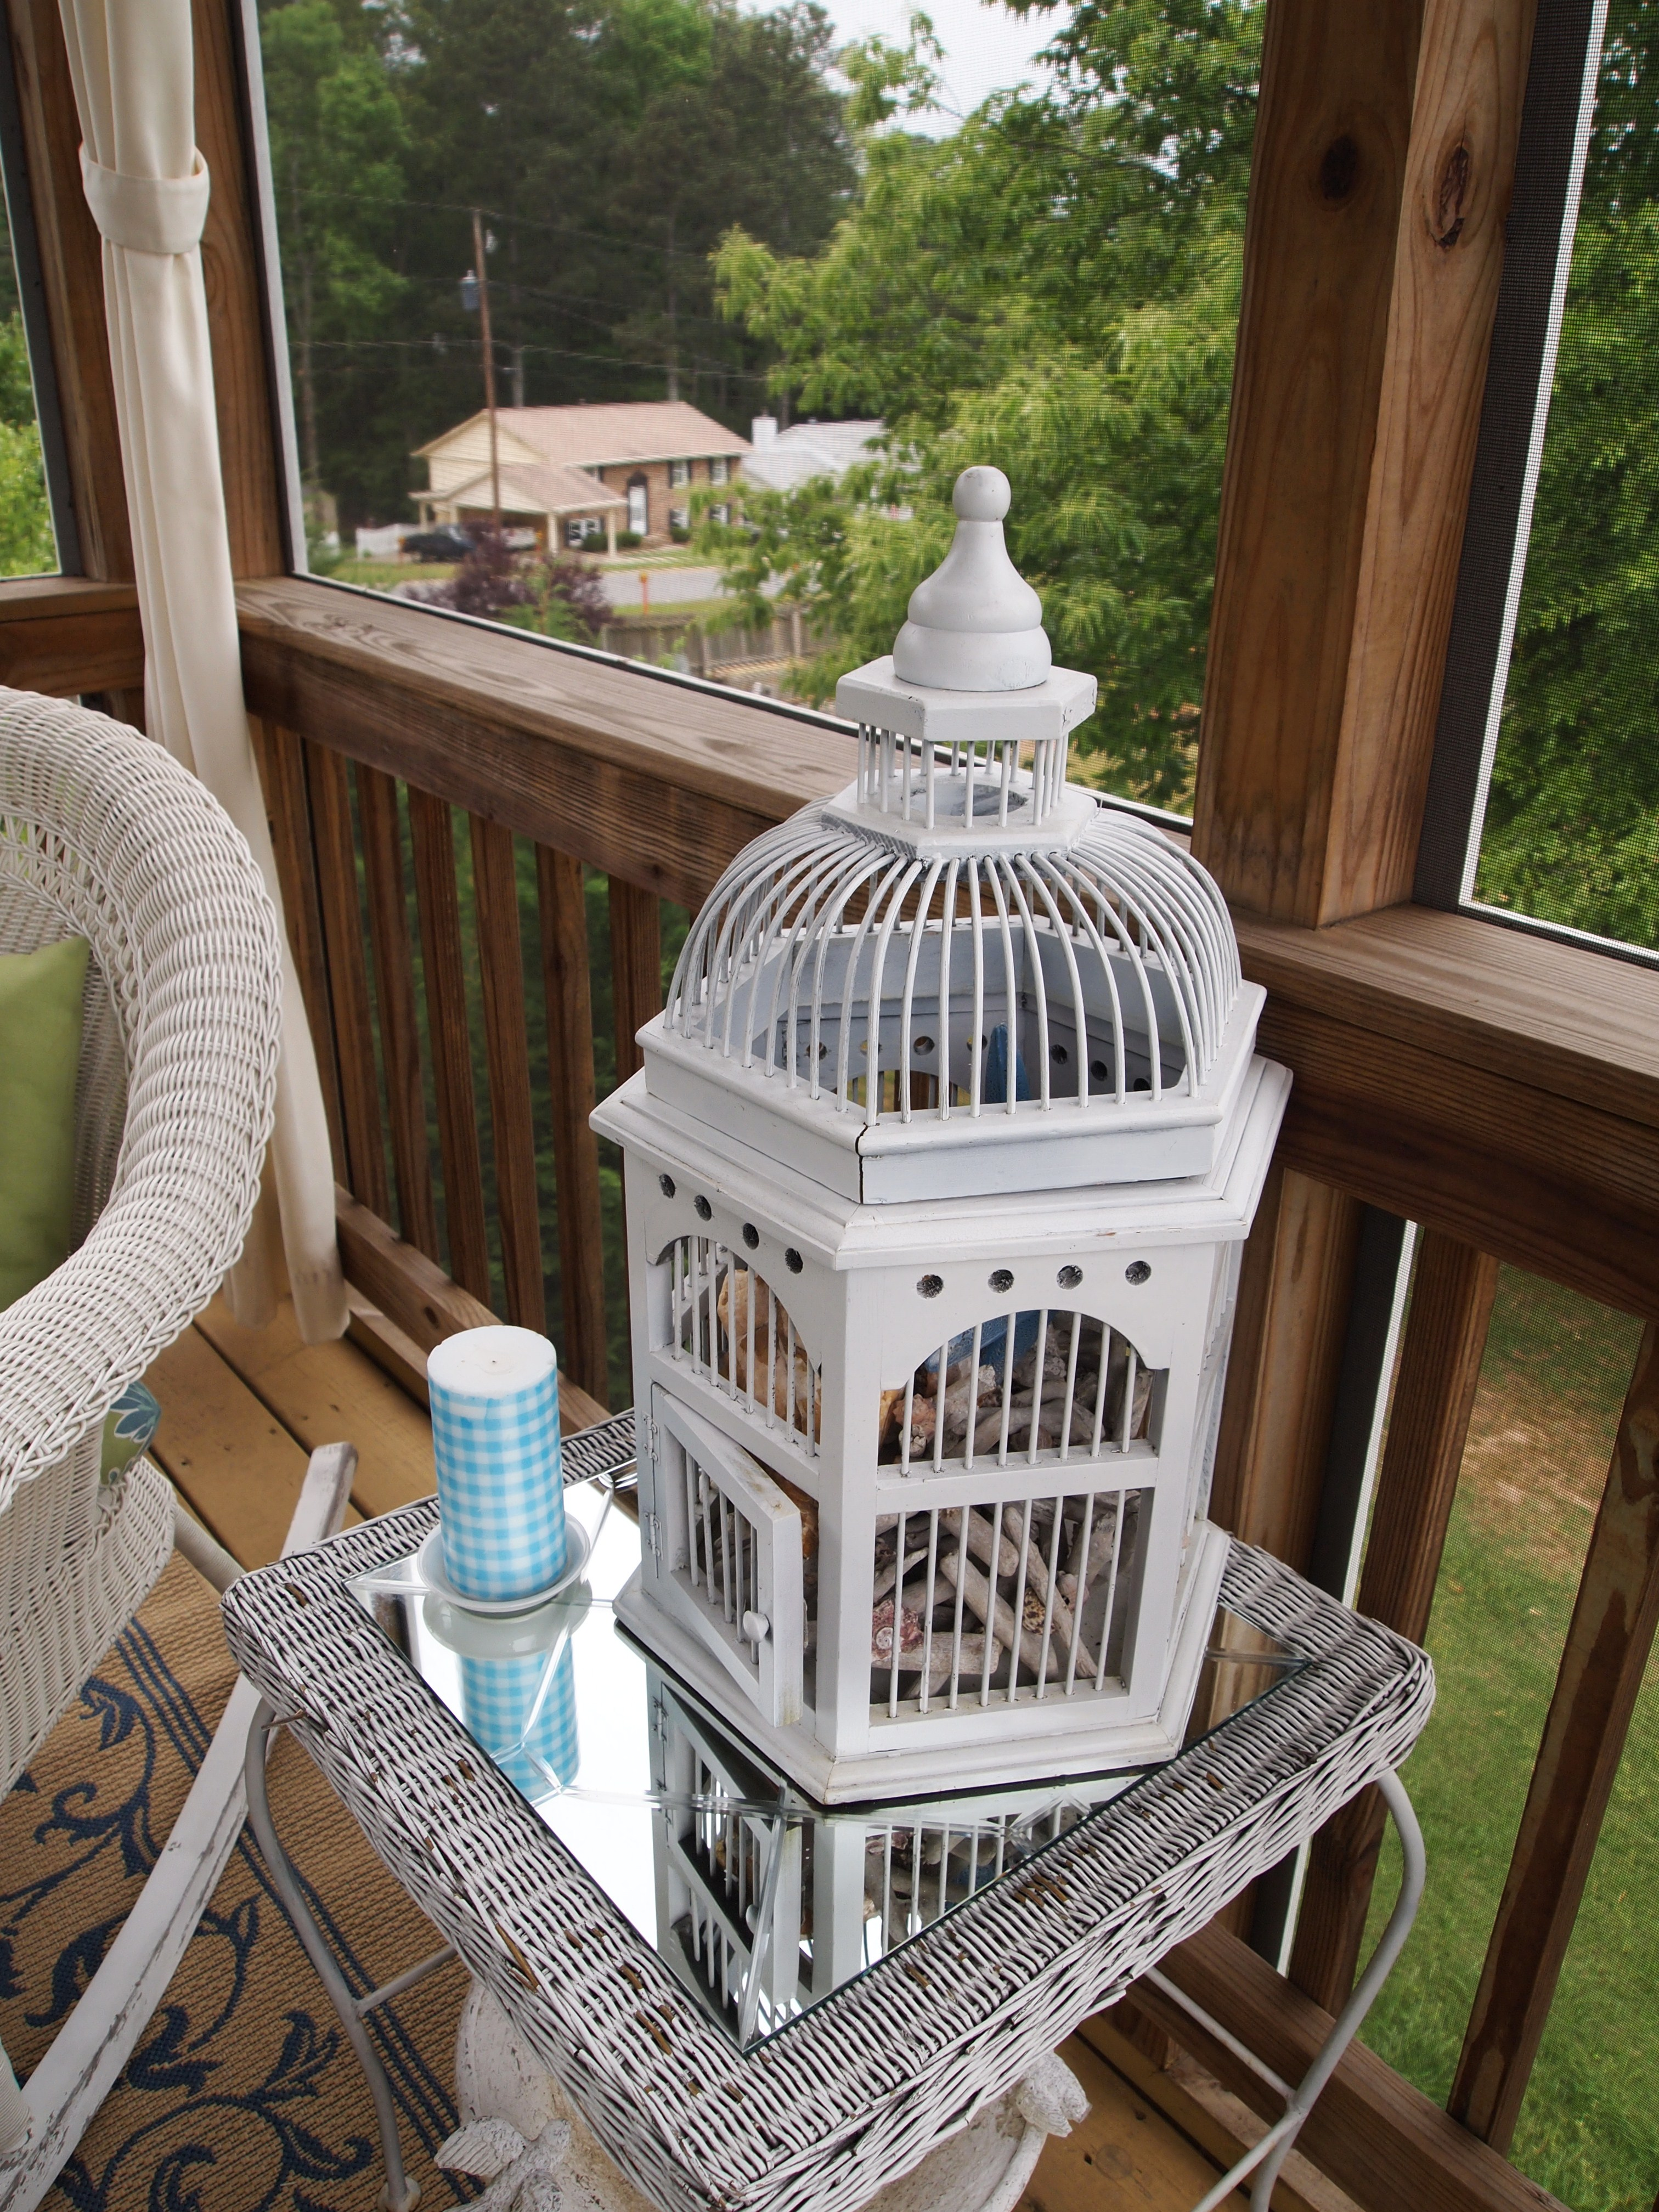 This Is The Birdcage I Found At Goodwill Last Year It Has Driftwood